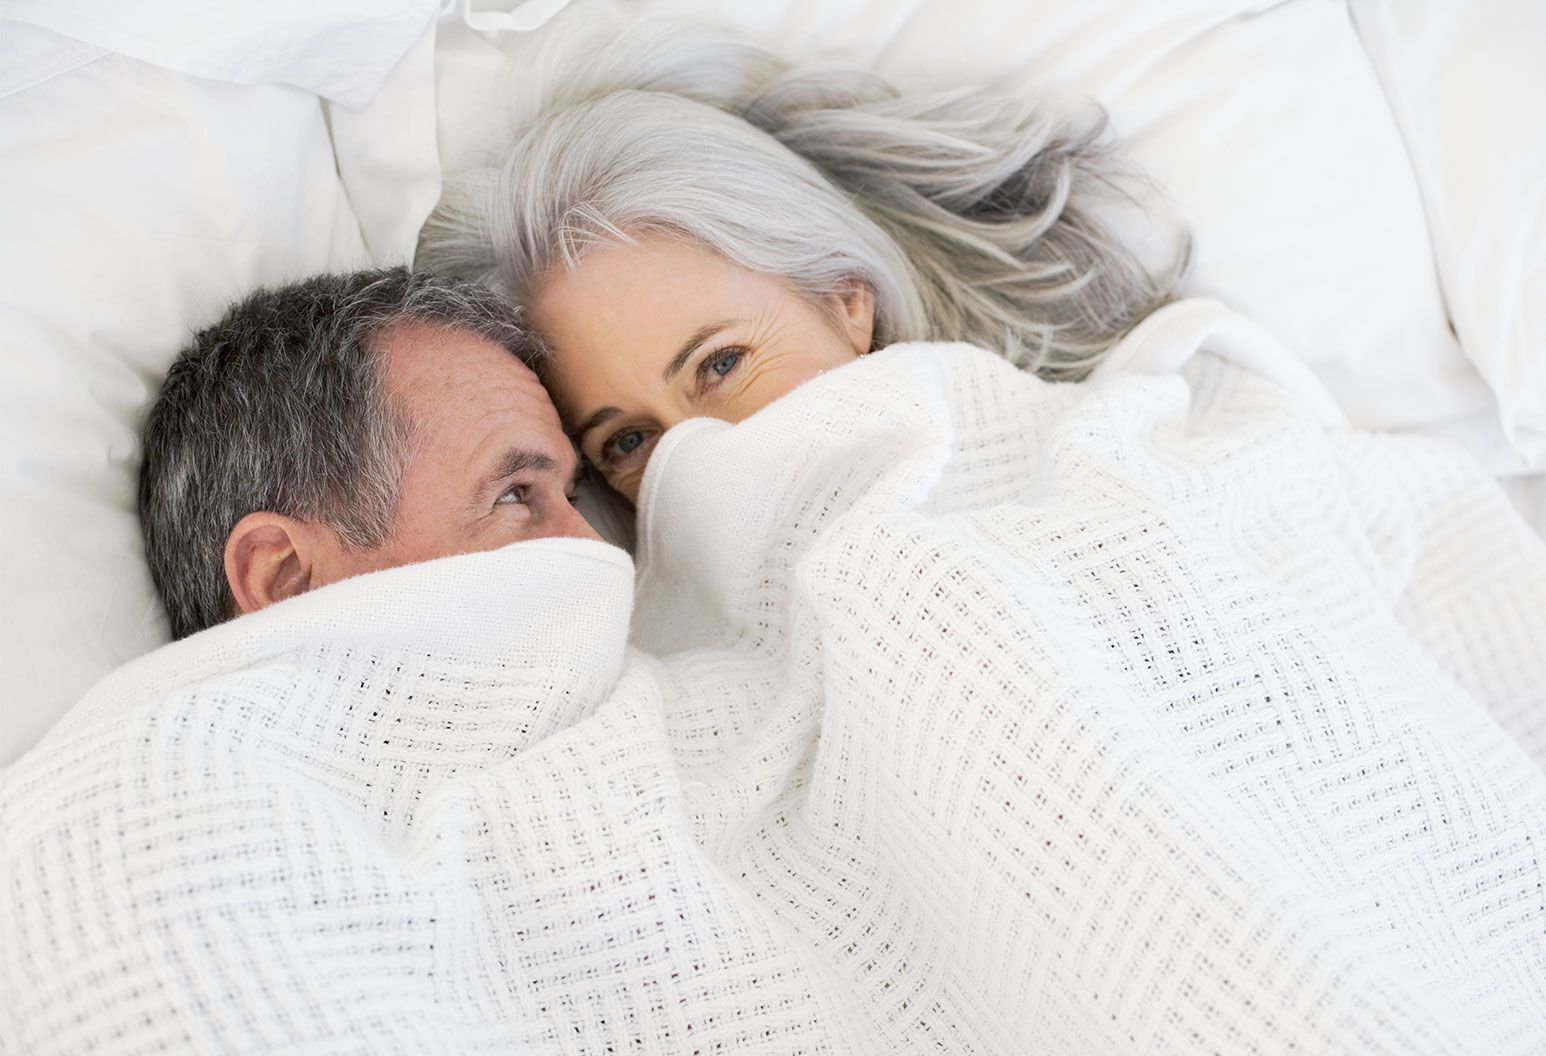 An older male and female with grey hair are smiling as they lay together under a blanket covering their mouths. The older male looks at the female adoringly as the female smiles at the camera.